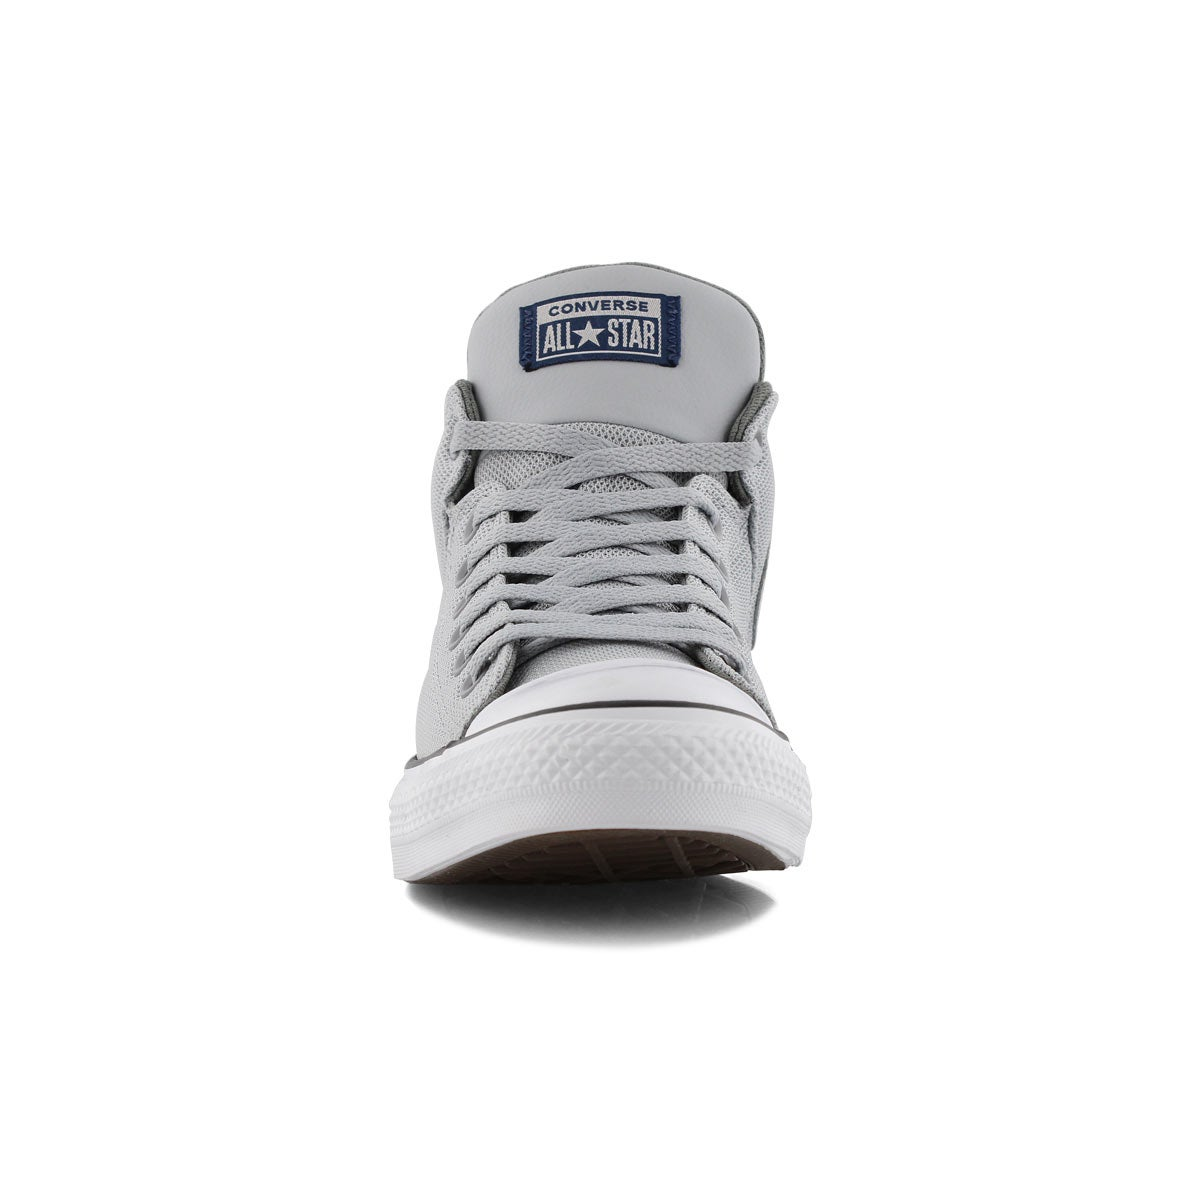 Mns CTAS High Street gry/nvy snkr